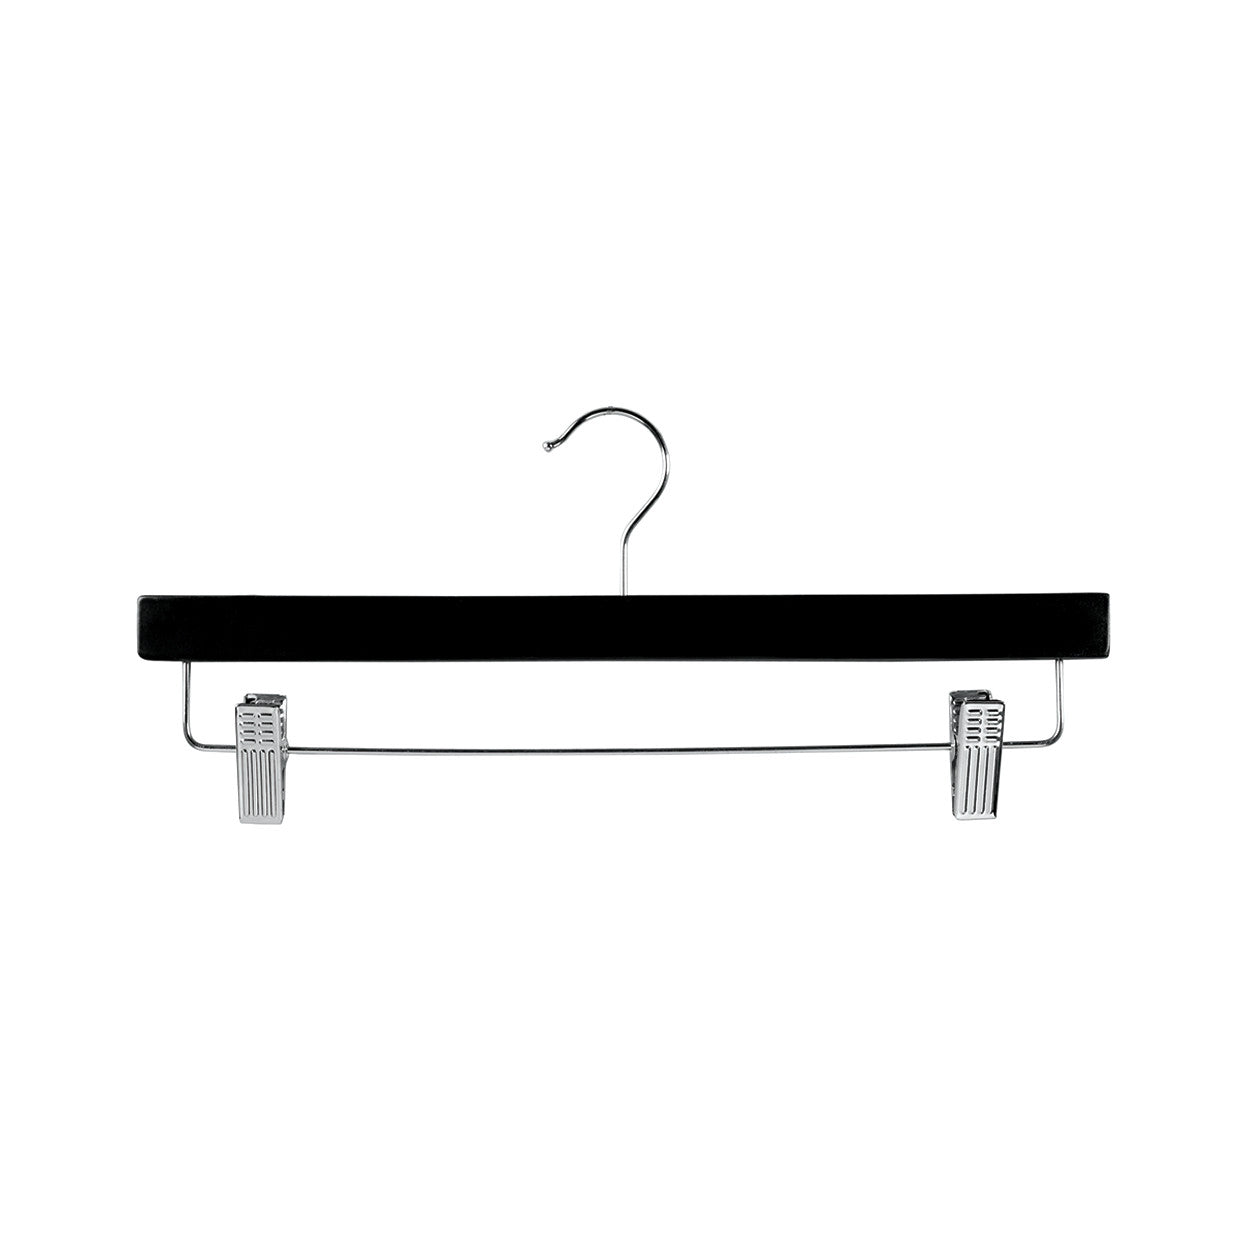 Black Clip Timber Hanger With Dropdown Rail & Clips 380 W X 12Mm Thick (Bundle of 10)